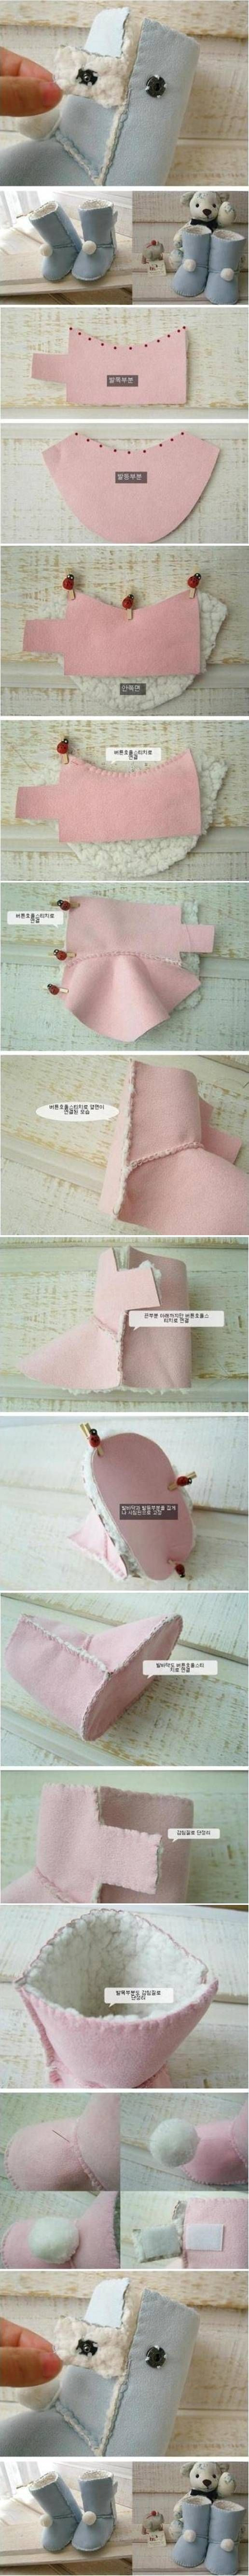 DIY UGG Booties #BOOTIES, #DIY, #CRAFT, #IDEAS, #PROJECTS, #HANDMADE, #KID, #UGG #BABY #SHOES #SEWING #HOWTO #SEWINGPATTERNS